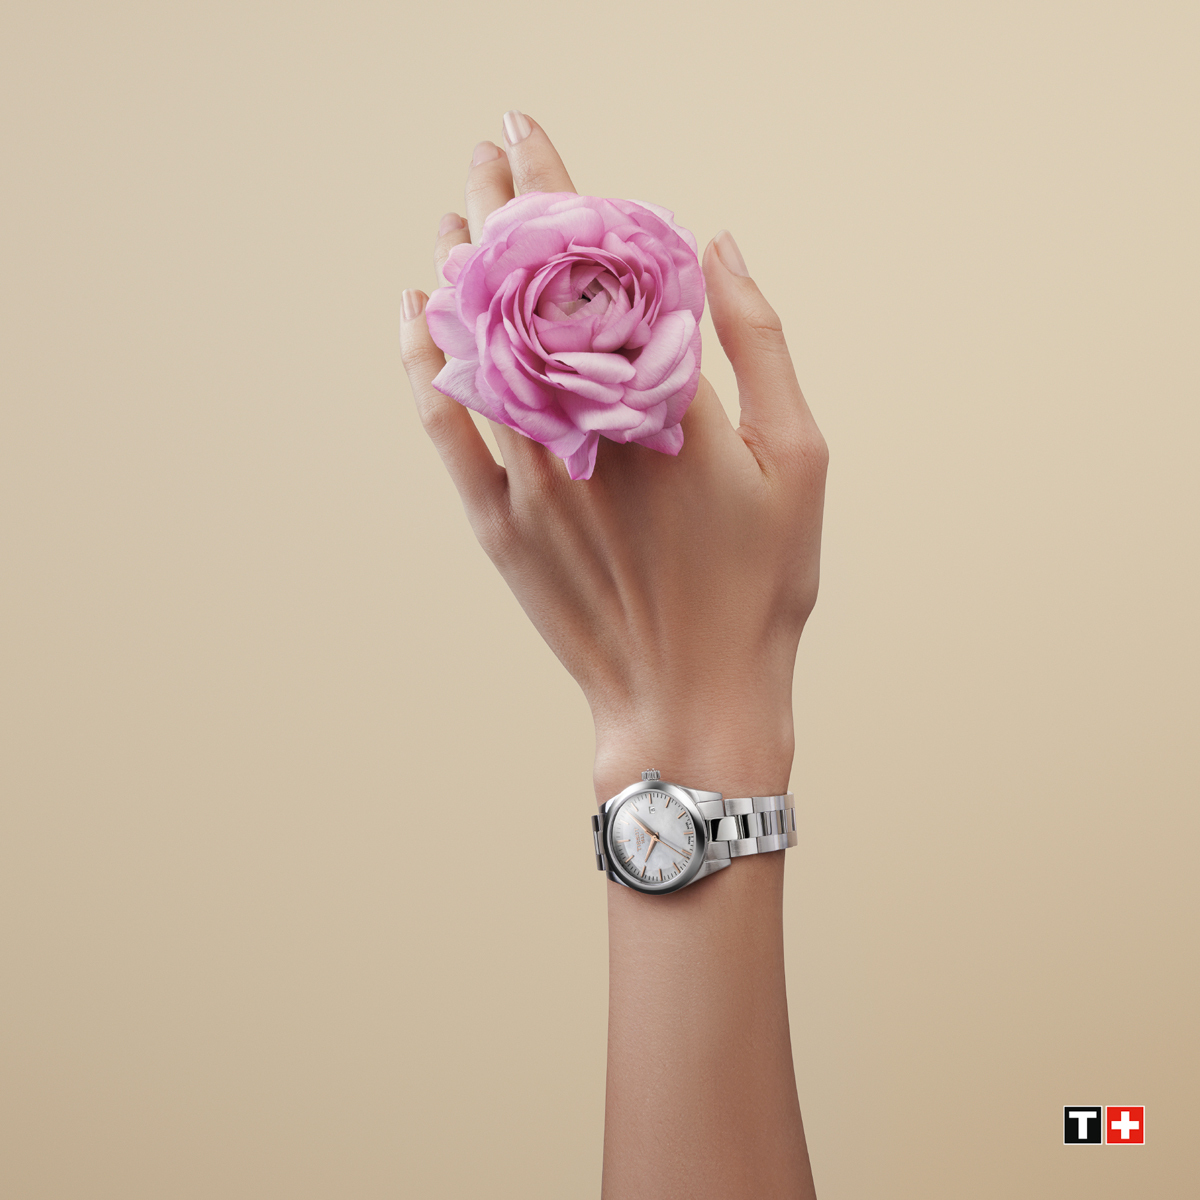 To those who teach us about the values that matter, today we're celebrating you and your amazing qualities with the T-My Lady range. Happy Mother's Day! #ThisIsYourTime #HappyMothersDay https://t.co/TCKw7Aks6Z